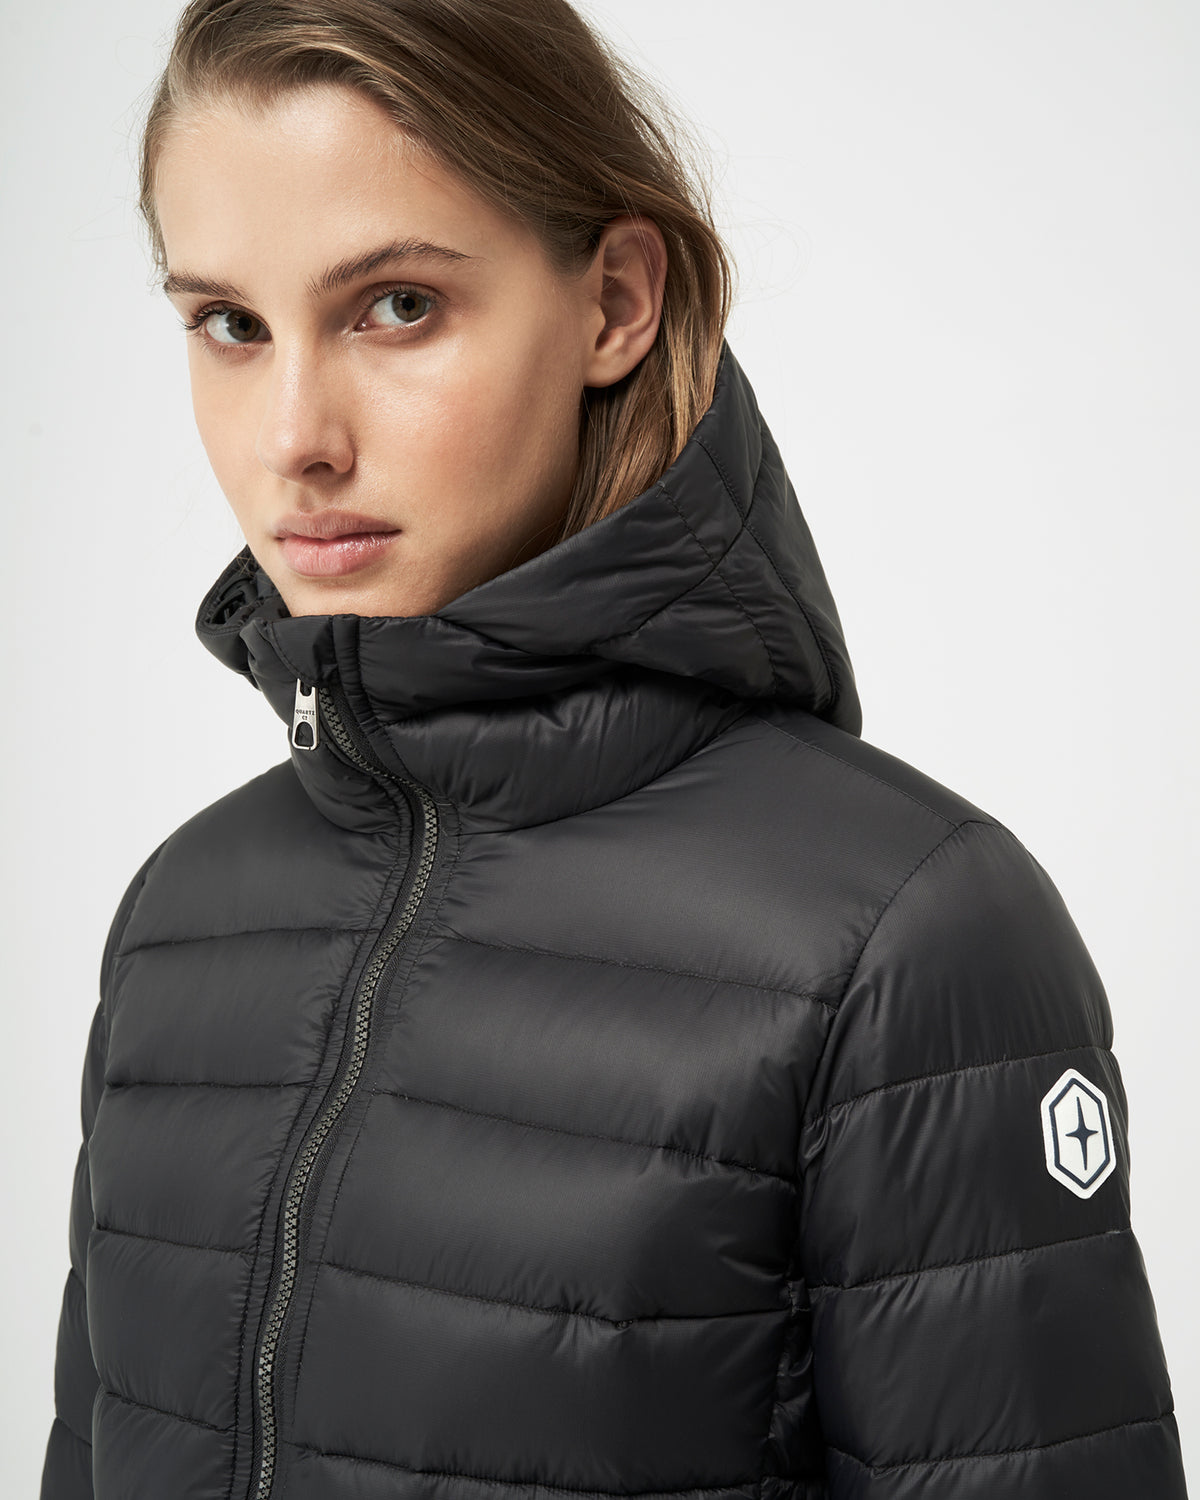 Quartz Co. - Canadian Made Winter Jackets | Woman | Lausanne | Women Down Lightweight jacket | Detailed